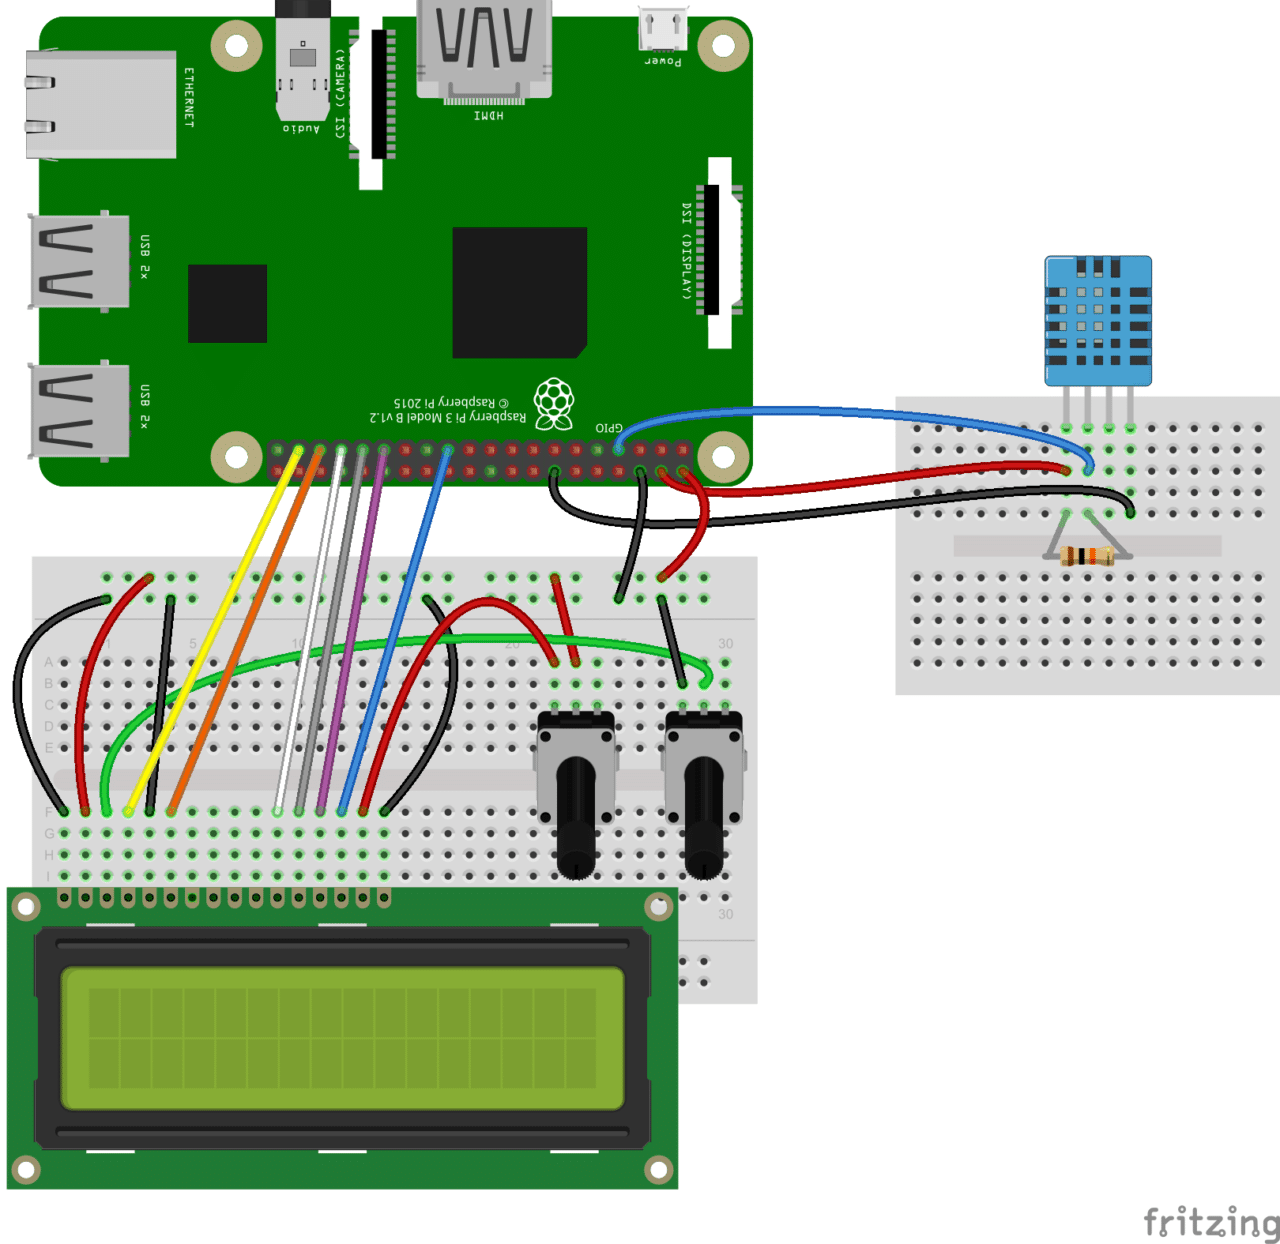 How To Set Up The Dht11 Humidity Sensor On Raspberry Pi 4 Pin Wiring Diagram For Light Reading Four With Lcd Output